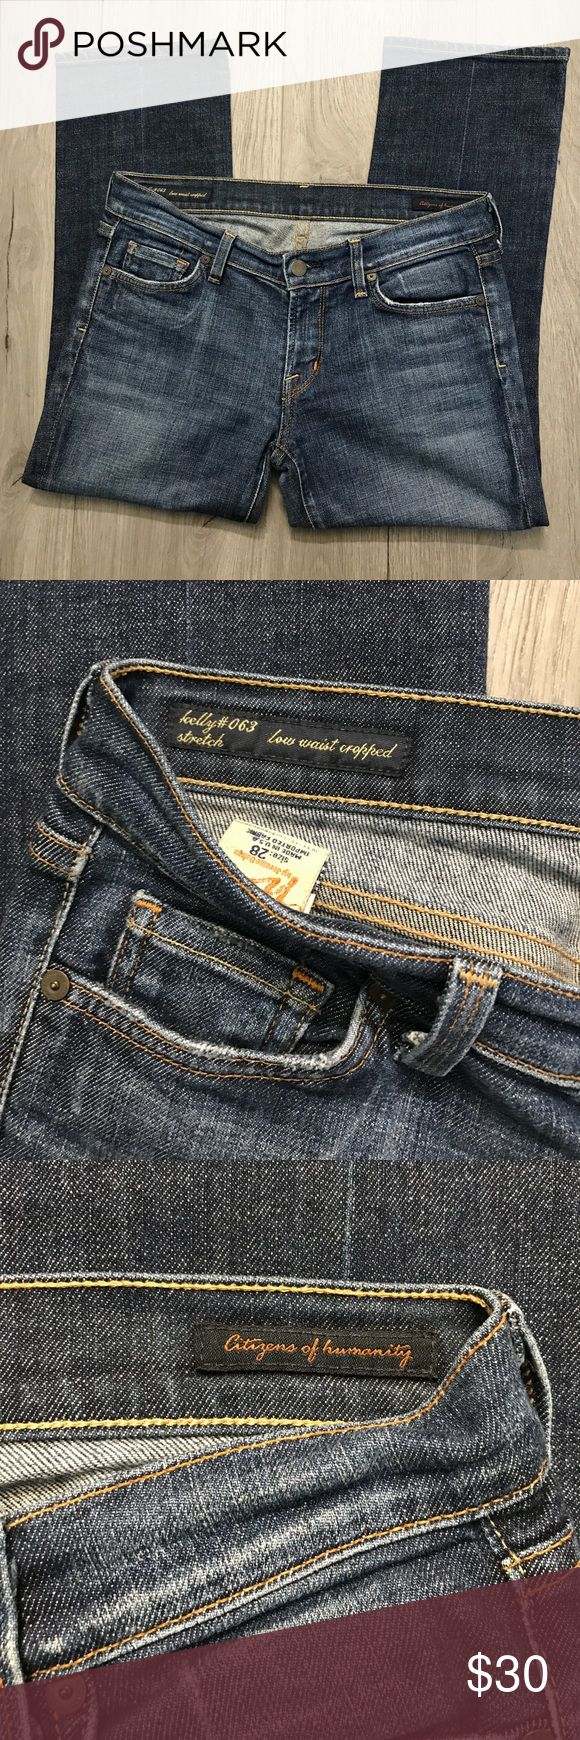 """Citizens of Humanity Women's Capris Women's size 28. The style is """"low waist cropped, Kelly #063 stretch"""". Worn about twice, great condition. No stains or rips! :) Citizens Of Humanity Jeans"""